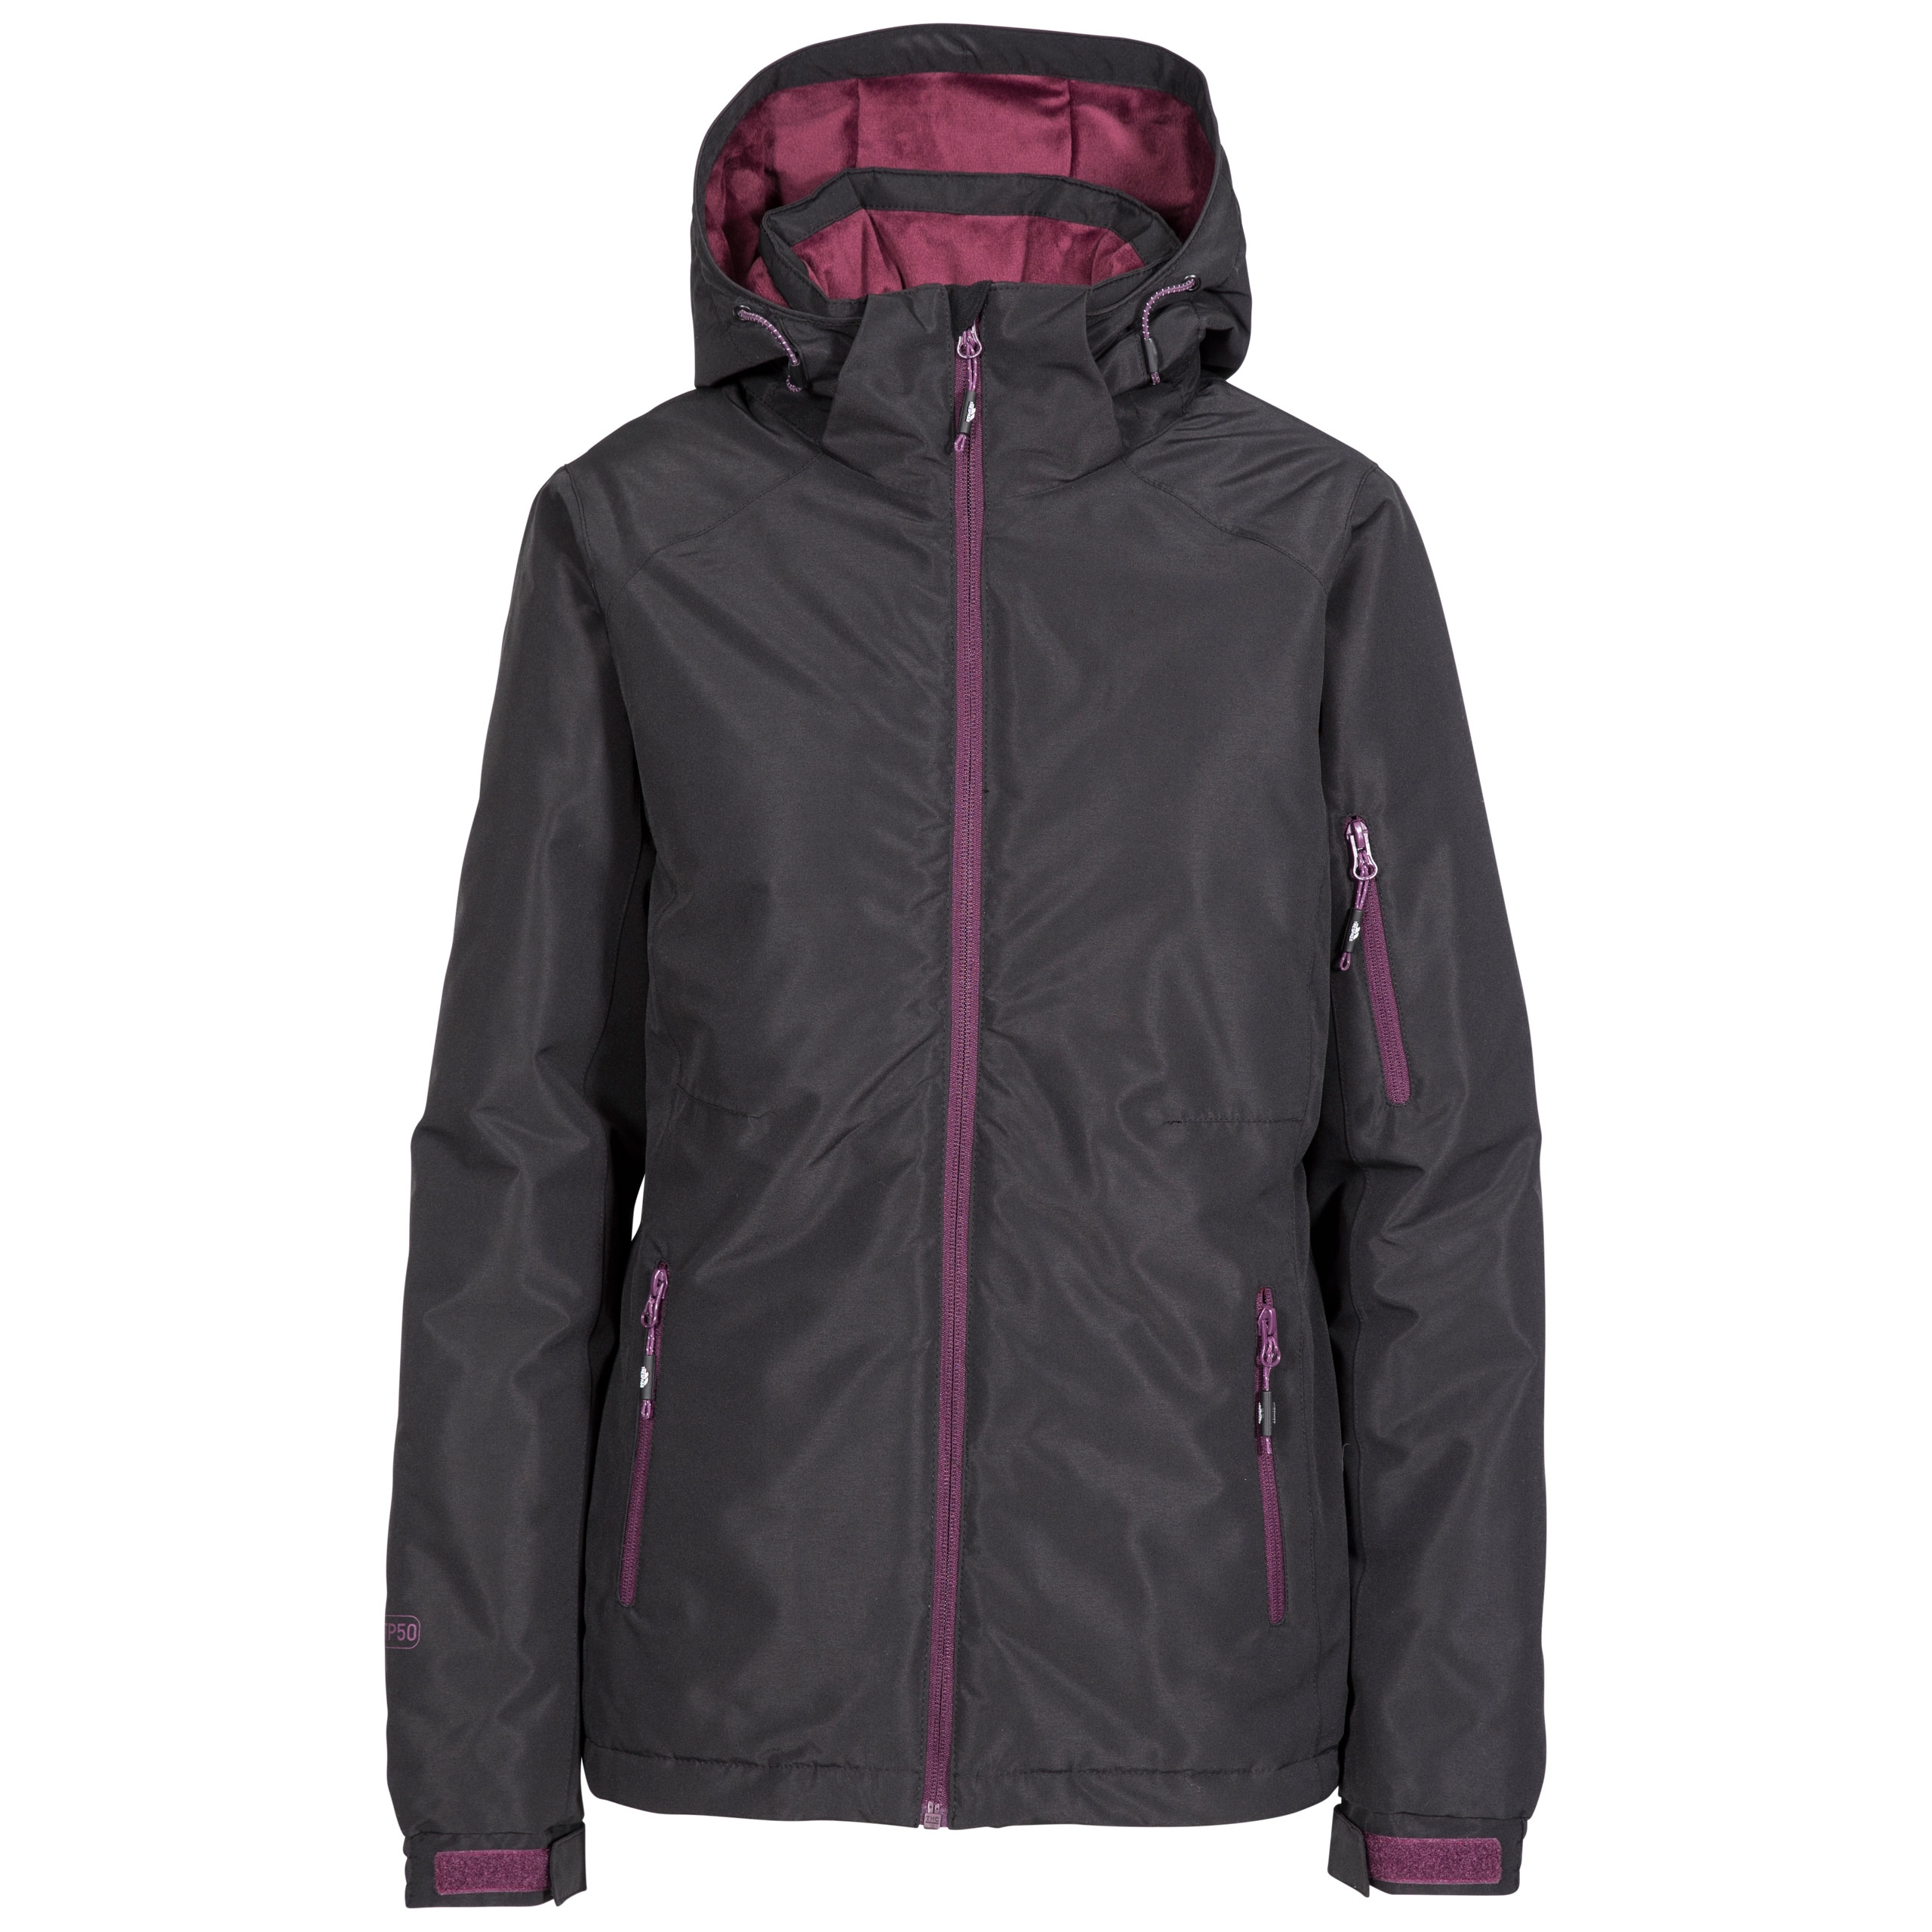 8cba7d44ab Details about Trespass Sheelin Women`s Insulated Ski Jacket Waterproof    Padded